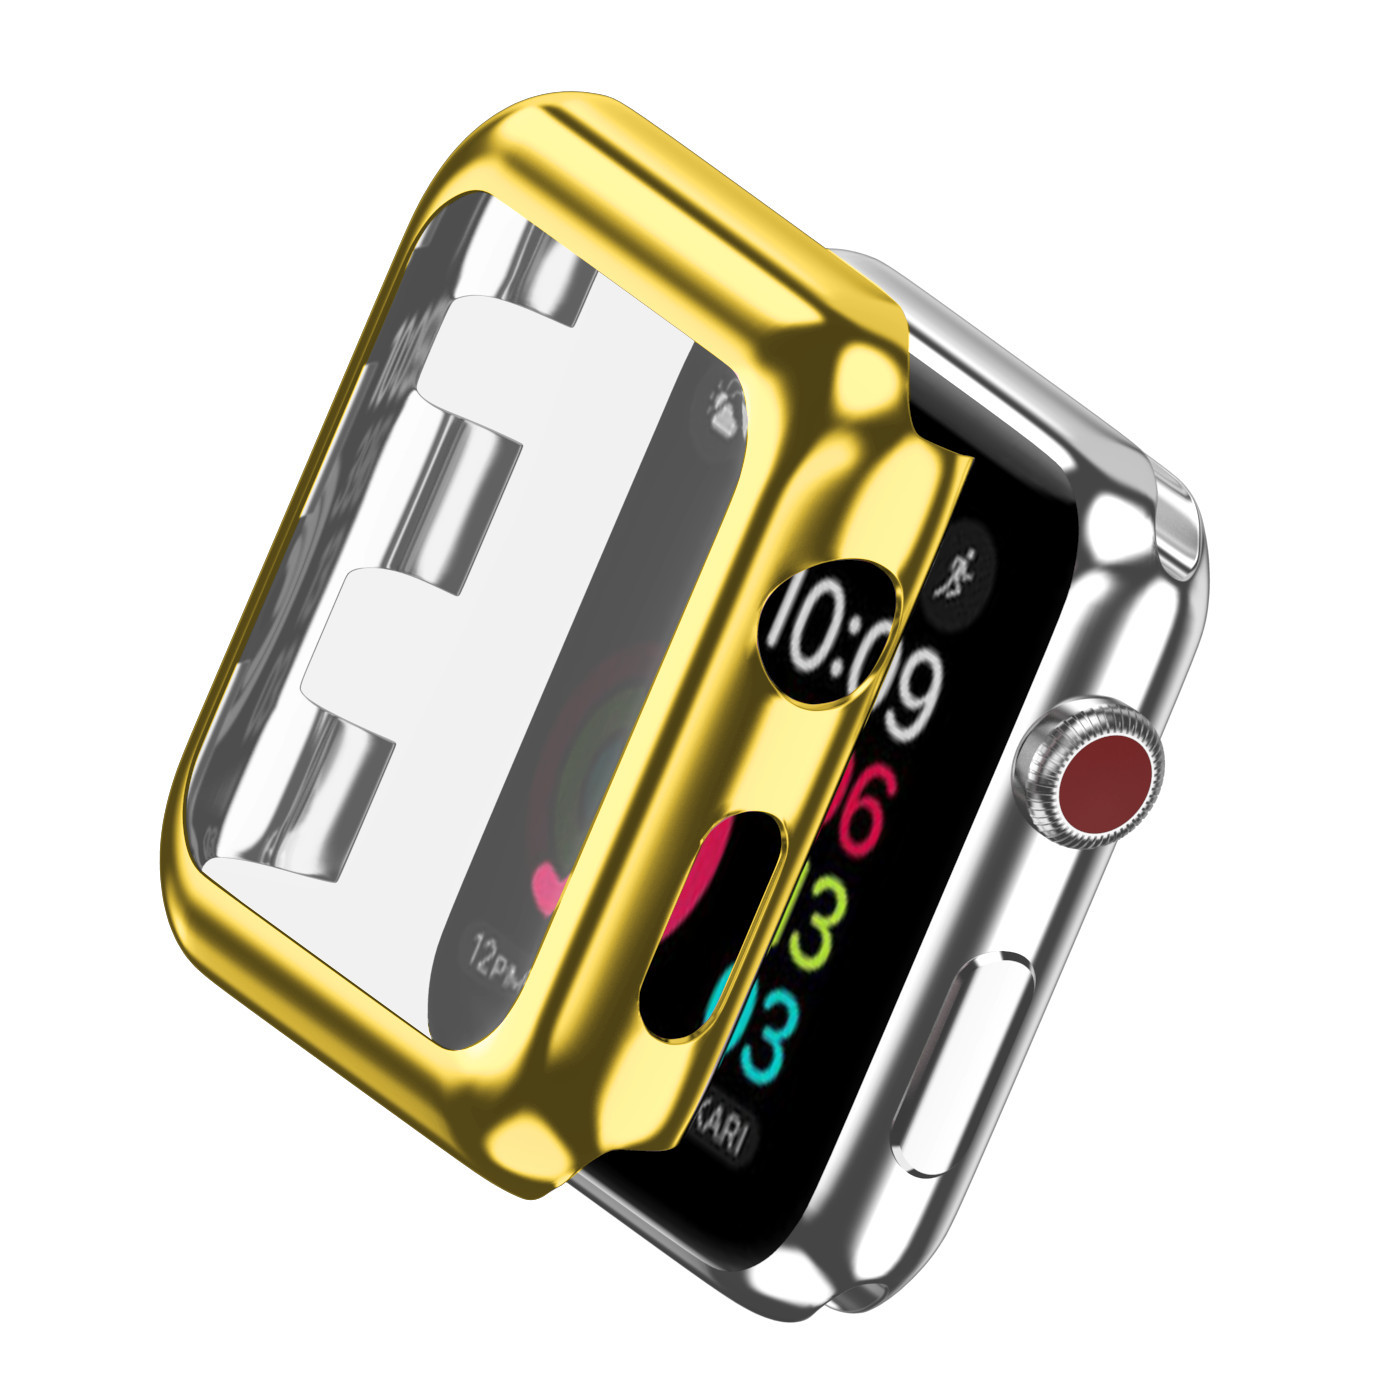 Bakeey Plating Watch Protective Case For Apple Watch Series 2/Series 3 38mm/42mm